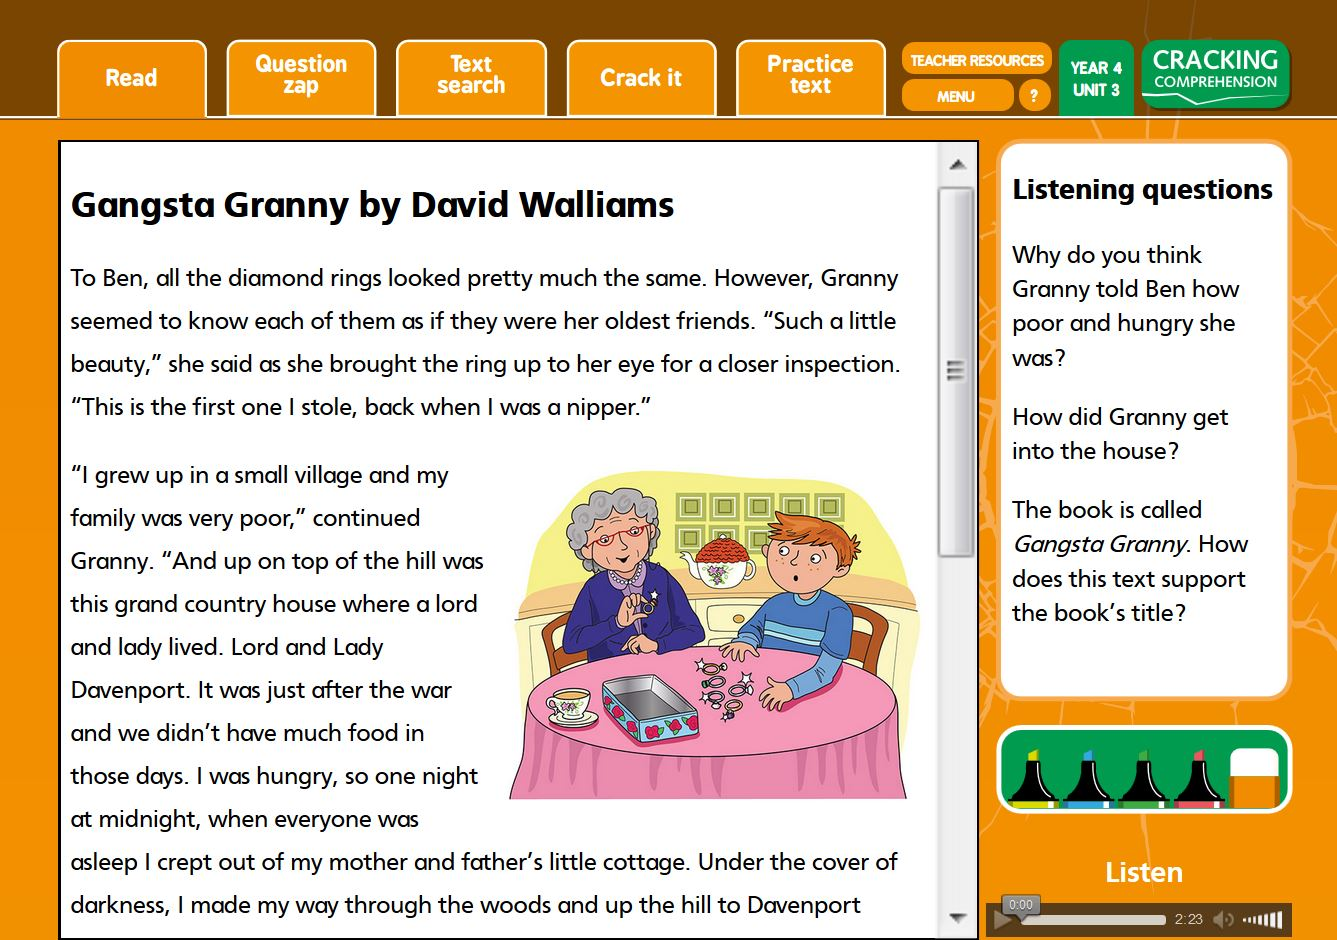 - Comprehension Resources For Year 4 - Cracking Comprehension